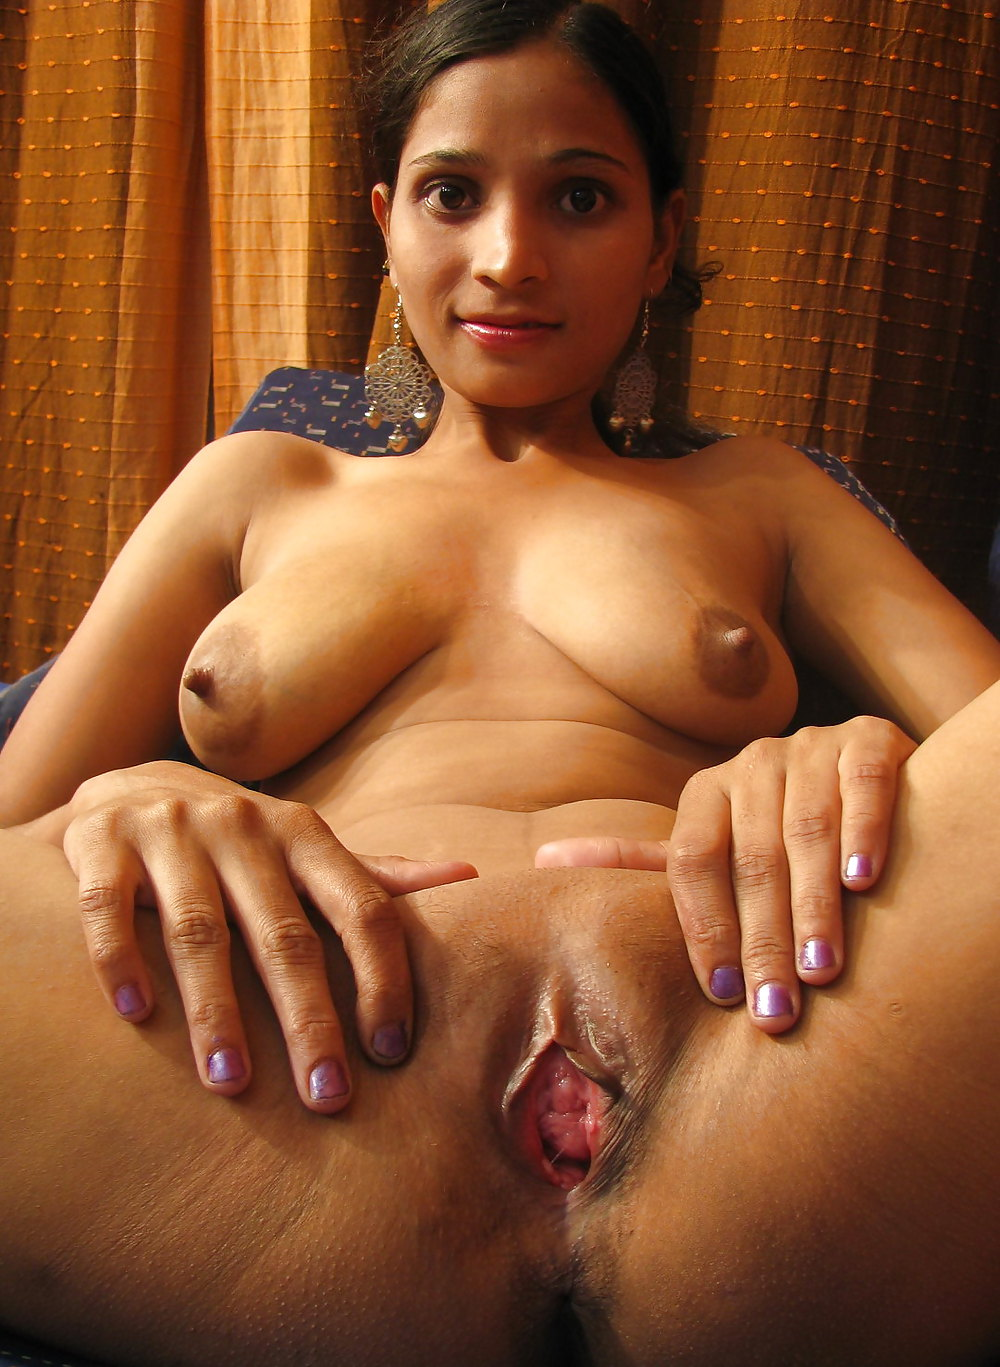 alt-girls-young-indian-malayalam-girl-porn-naked-lake